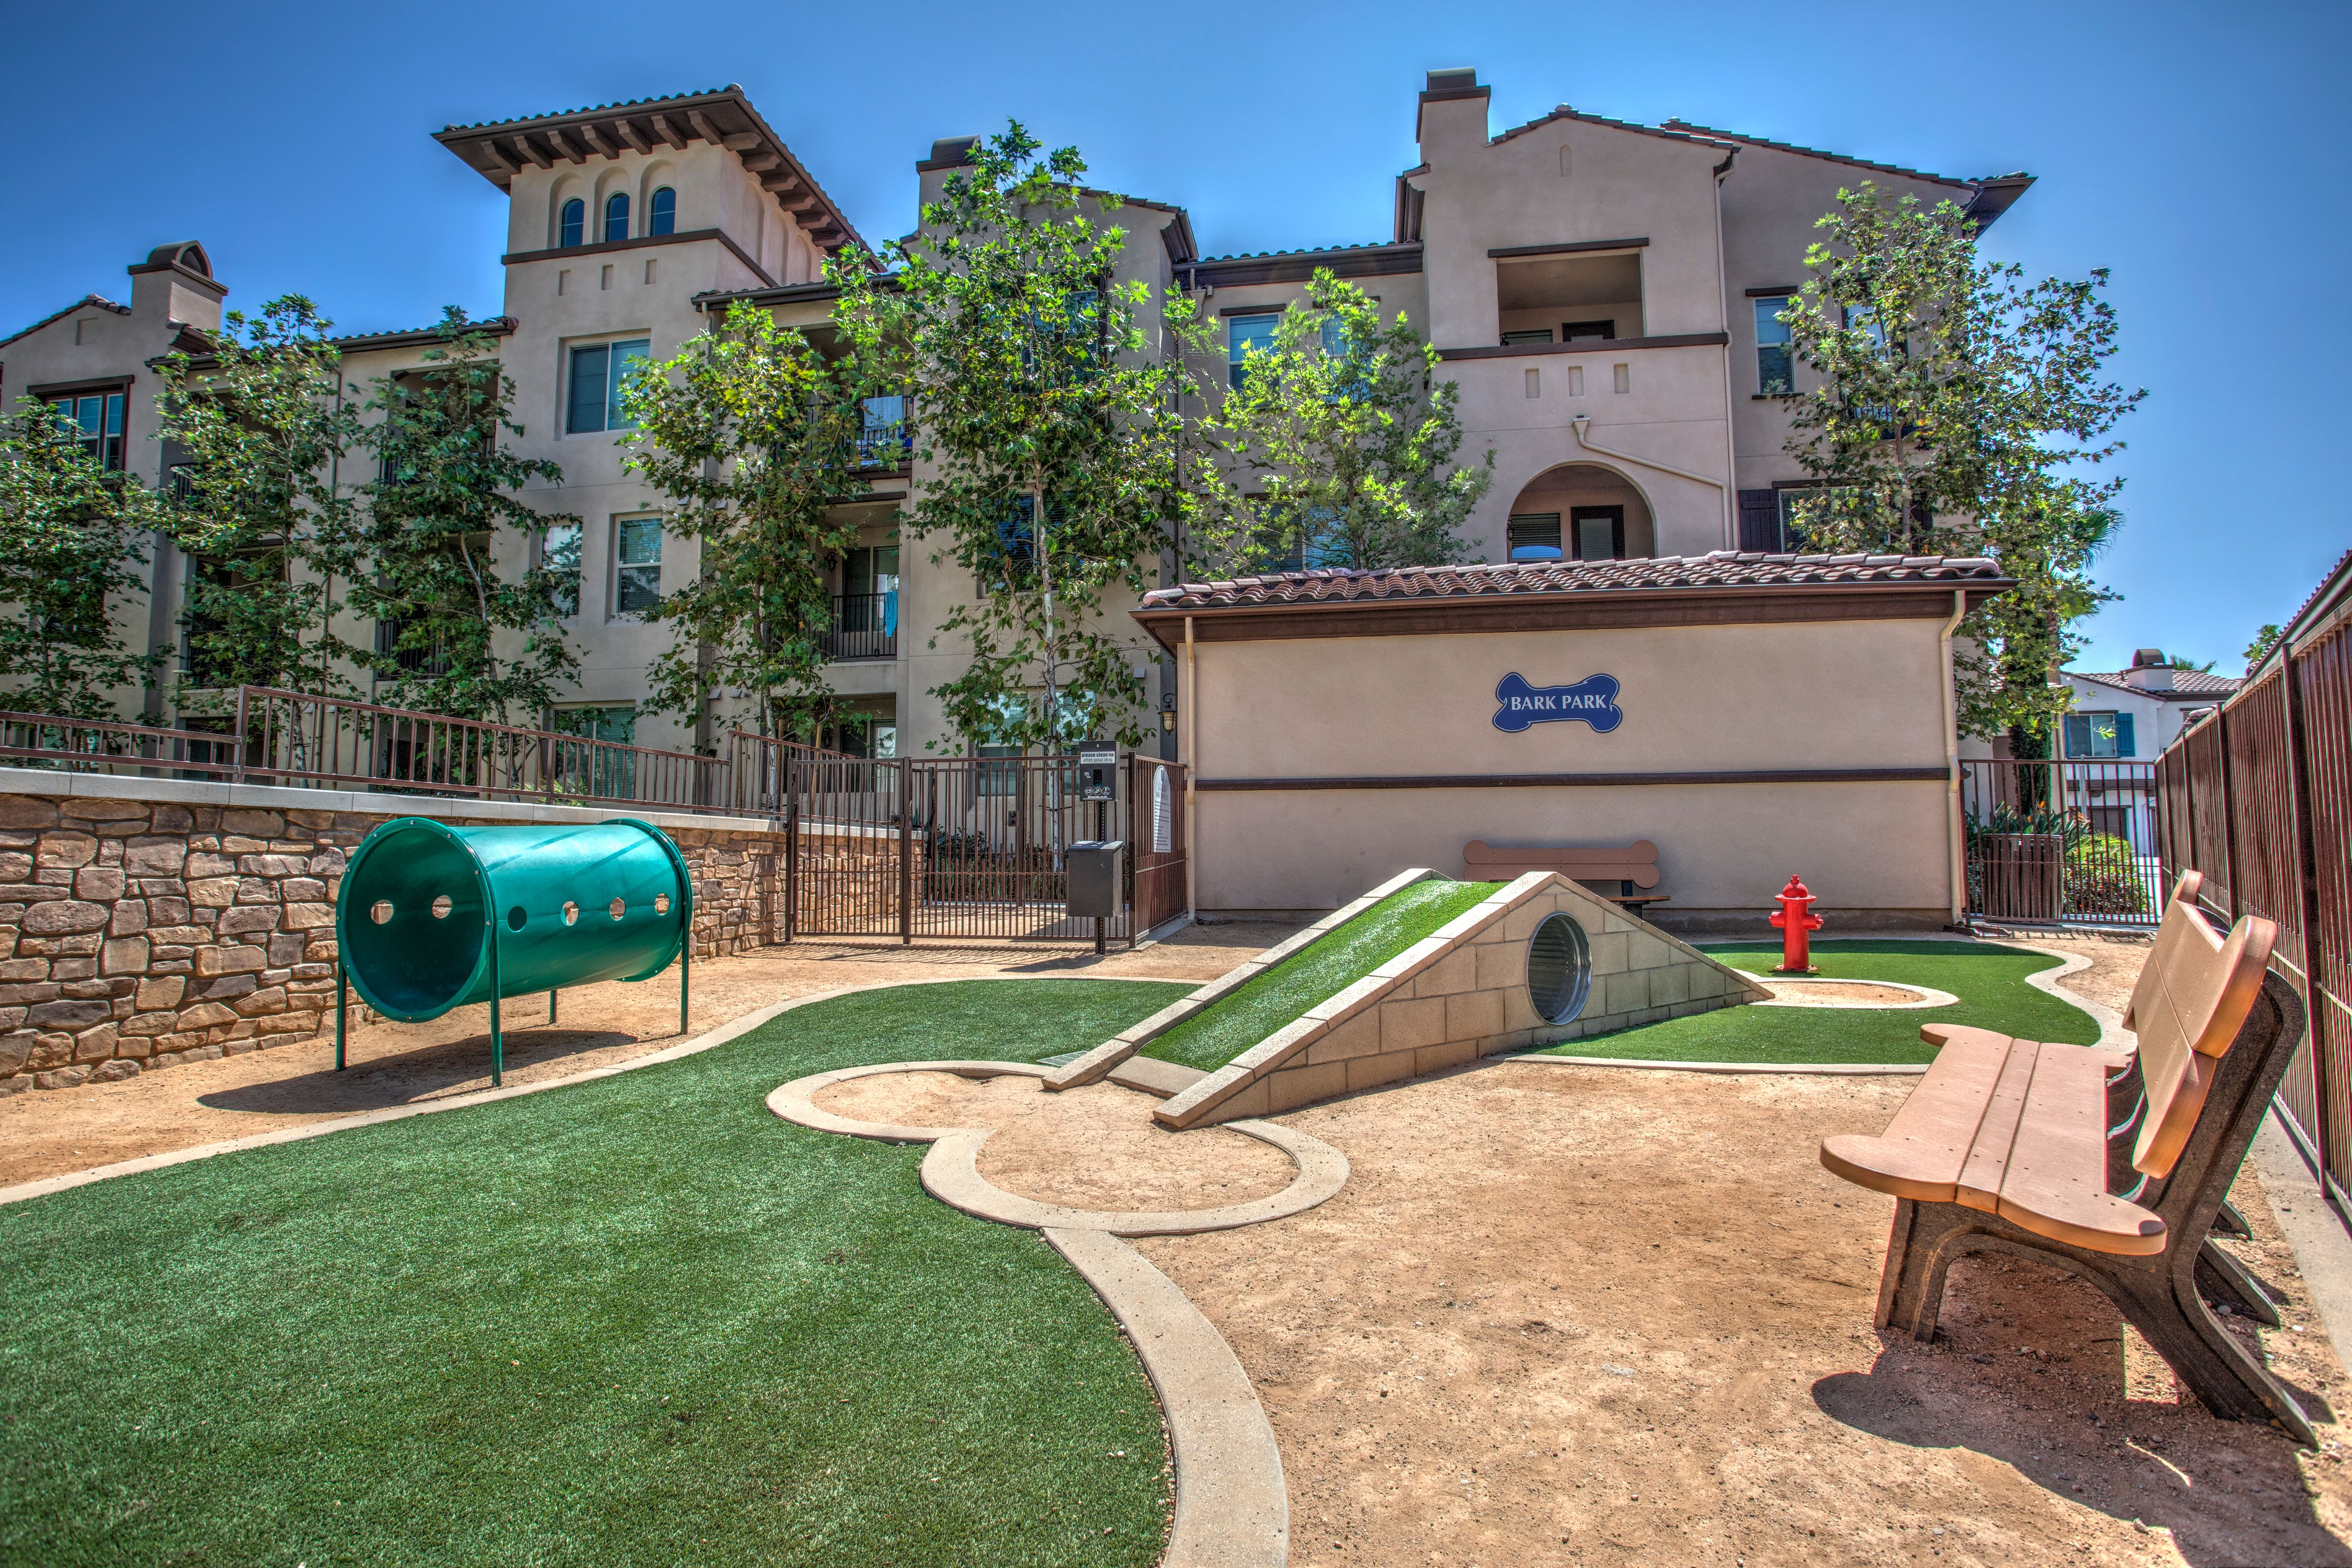 The Bark Park, one of Palisades Sierra Del Oro's numerous community amenities.